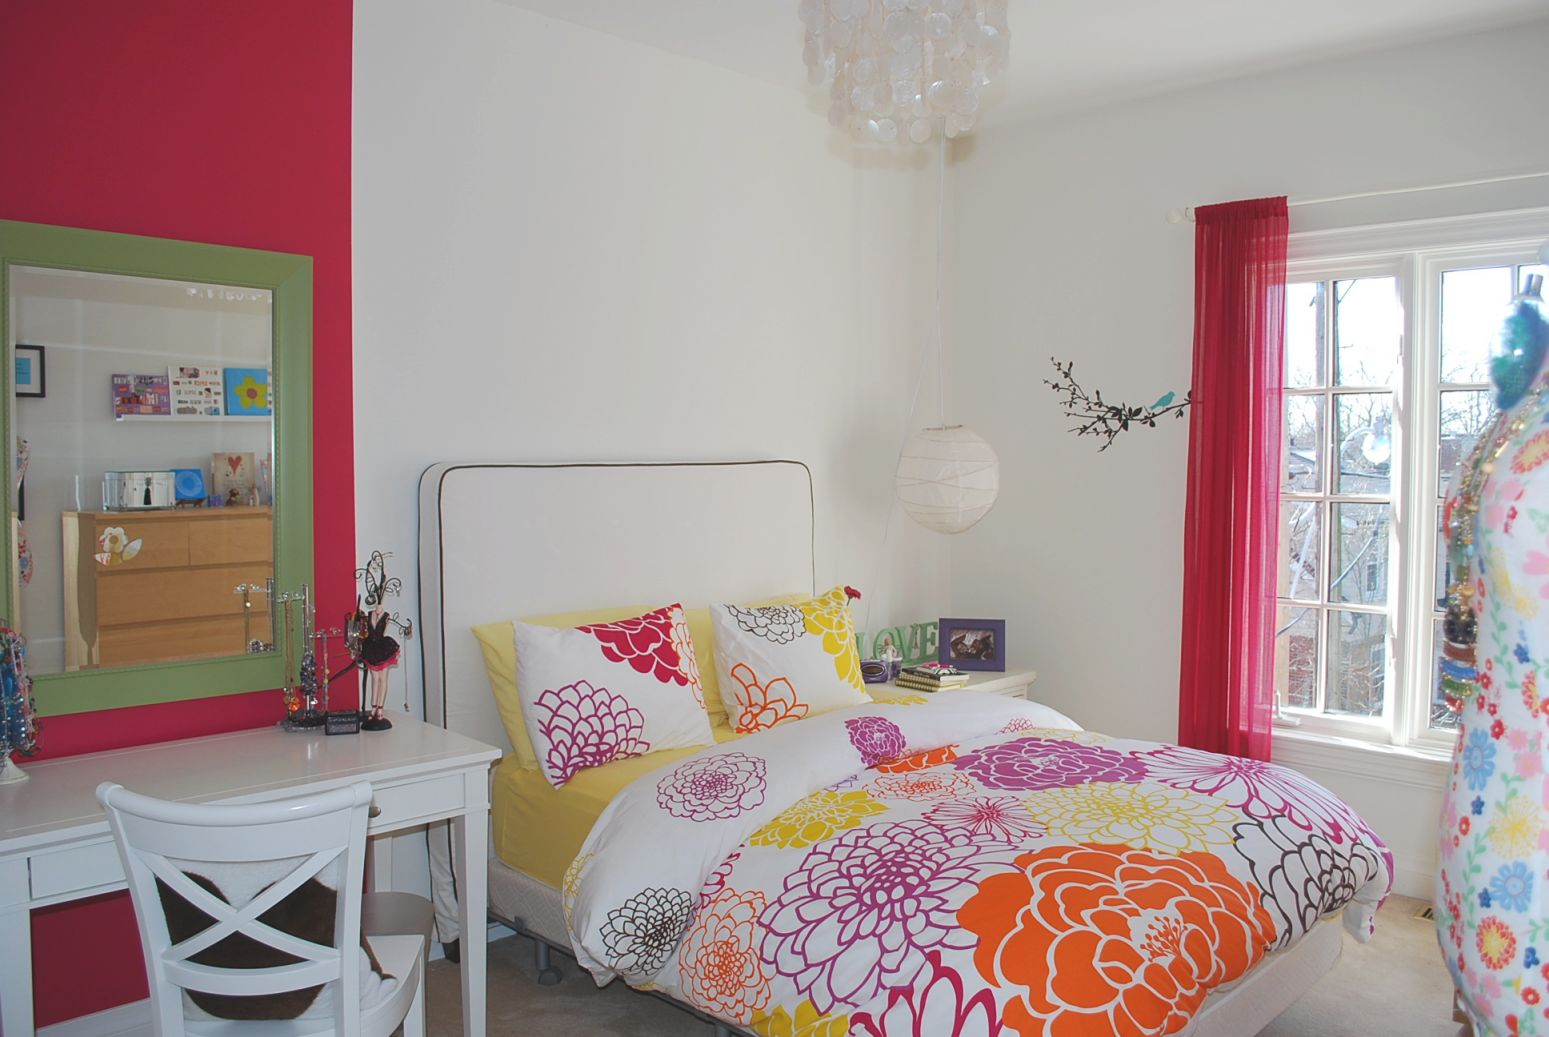 Bedroom Decorating Ideas For Bachelor On With Hd Resolution regarding Fresh Tween Girl Bedroom Decorating Ideas